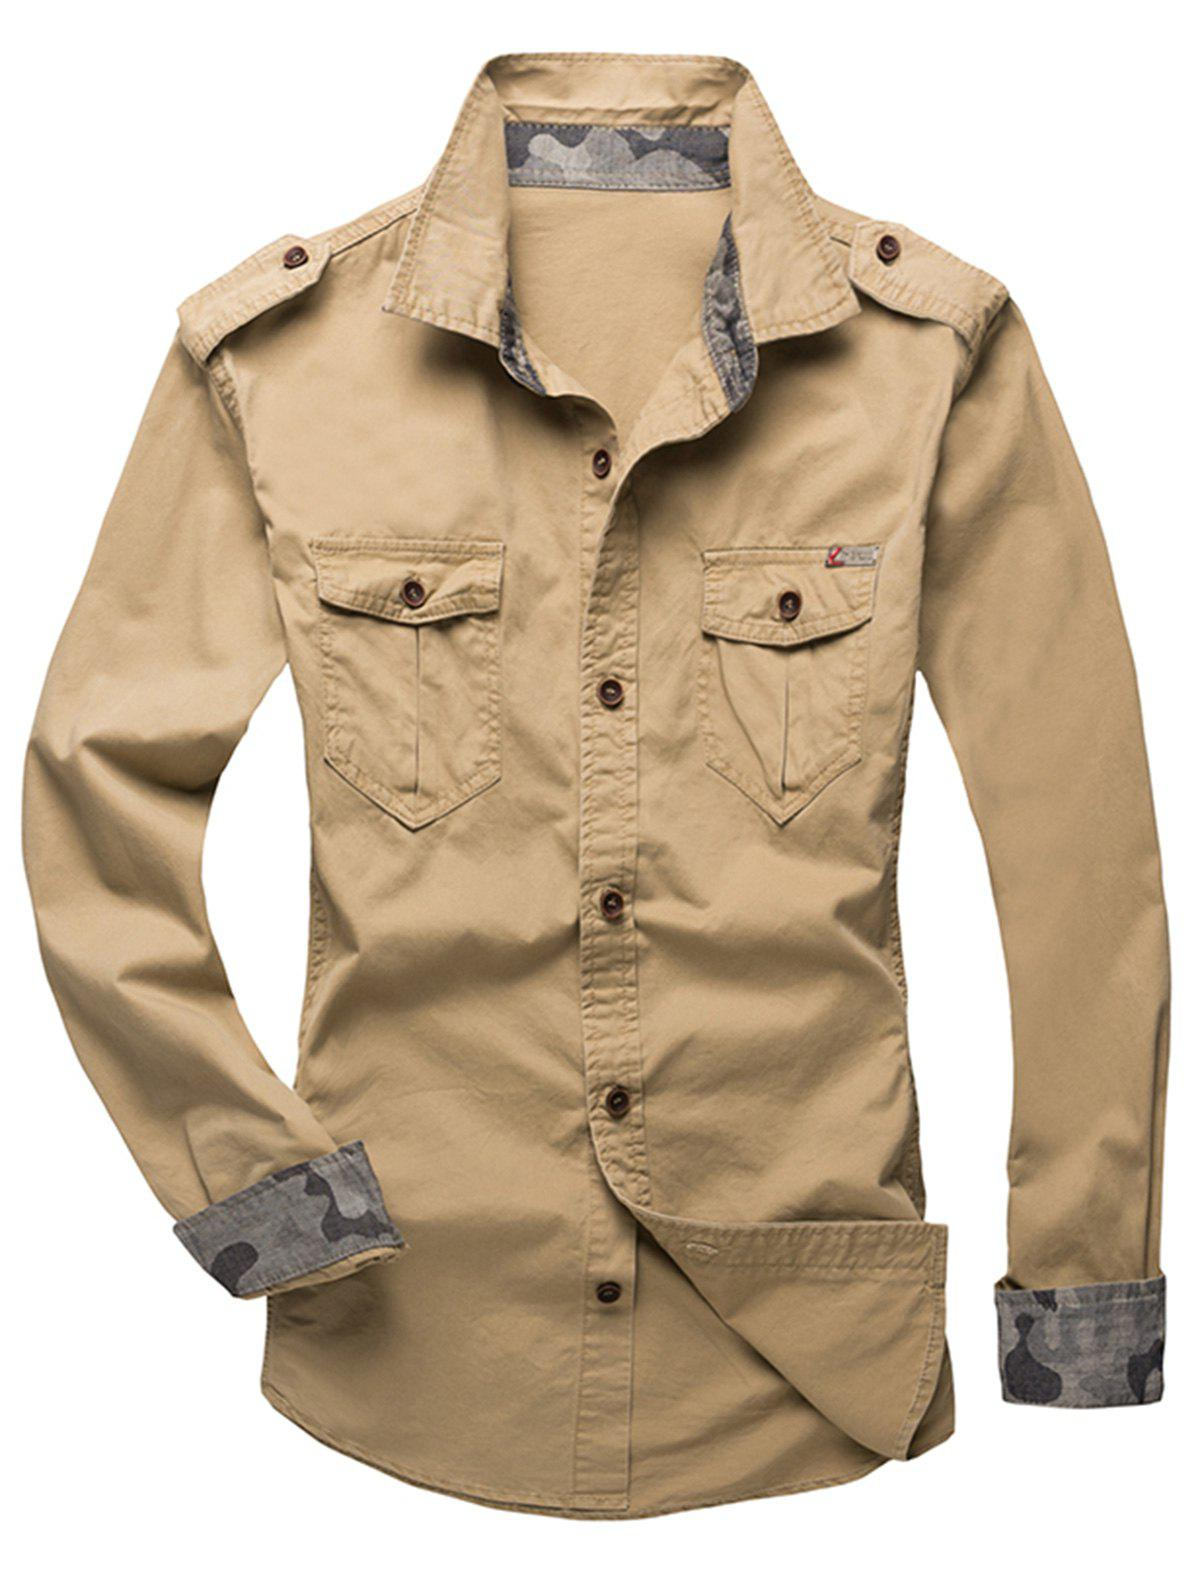 Affordable Epaulet Design Fatigue Shirt